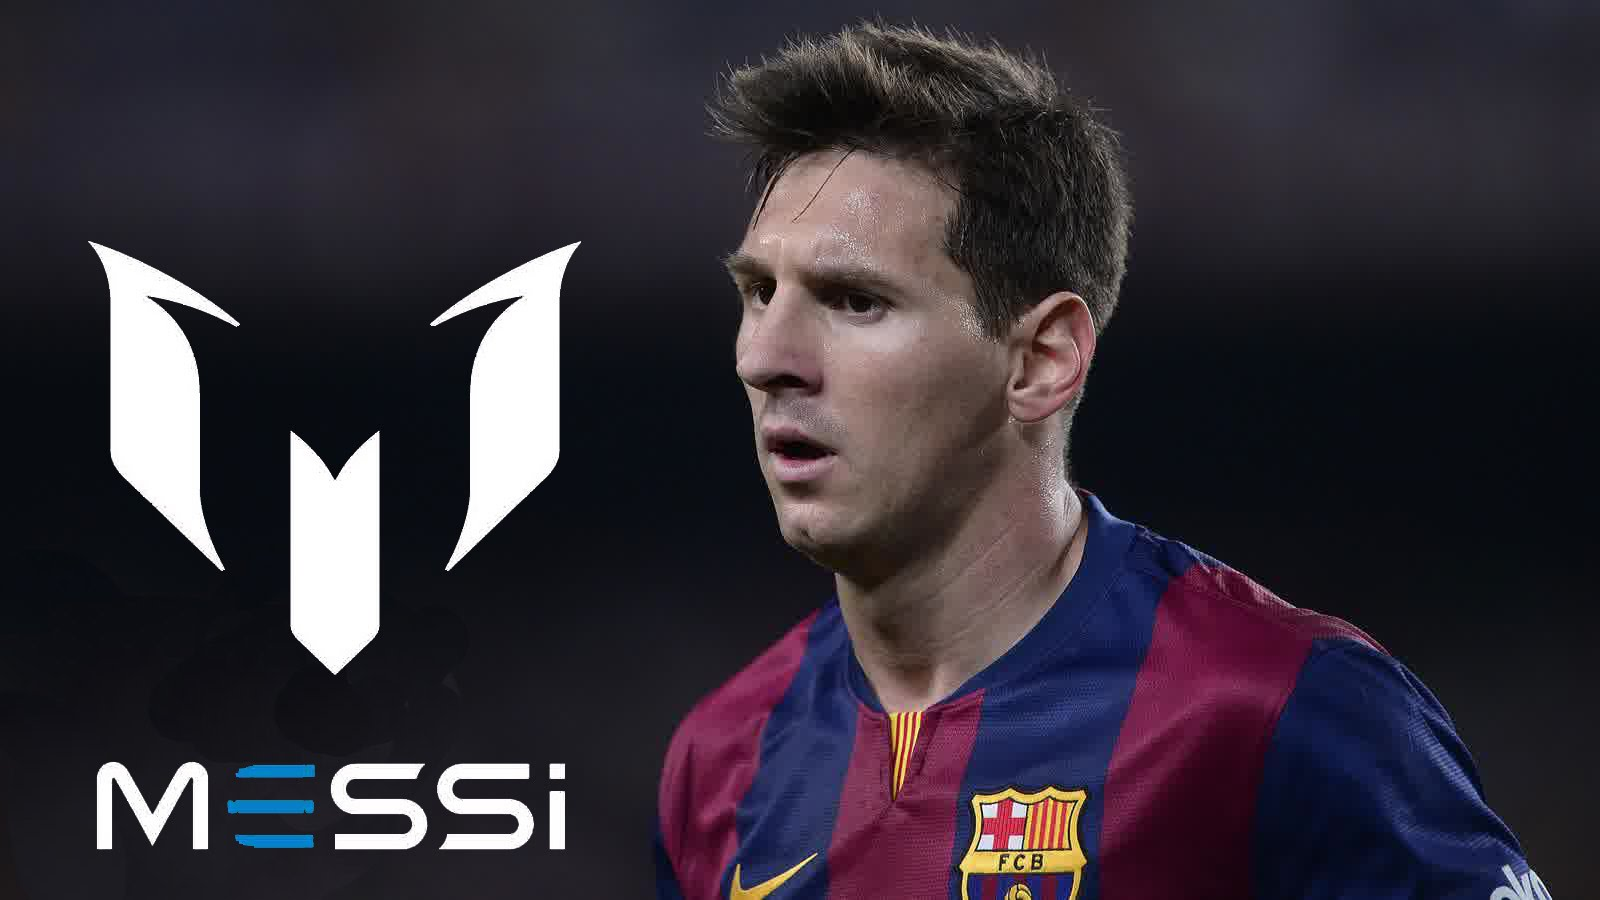 Lionel Messi Wallpaper Backgrounds Wallpapers Master